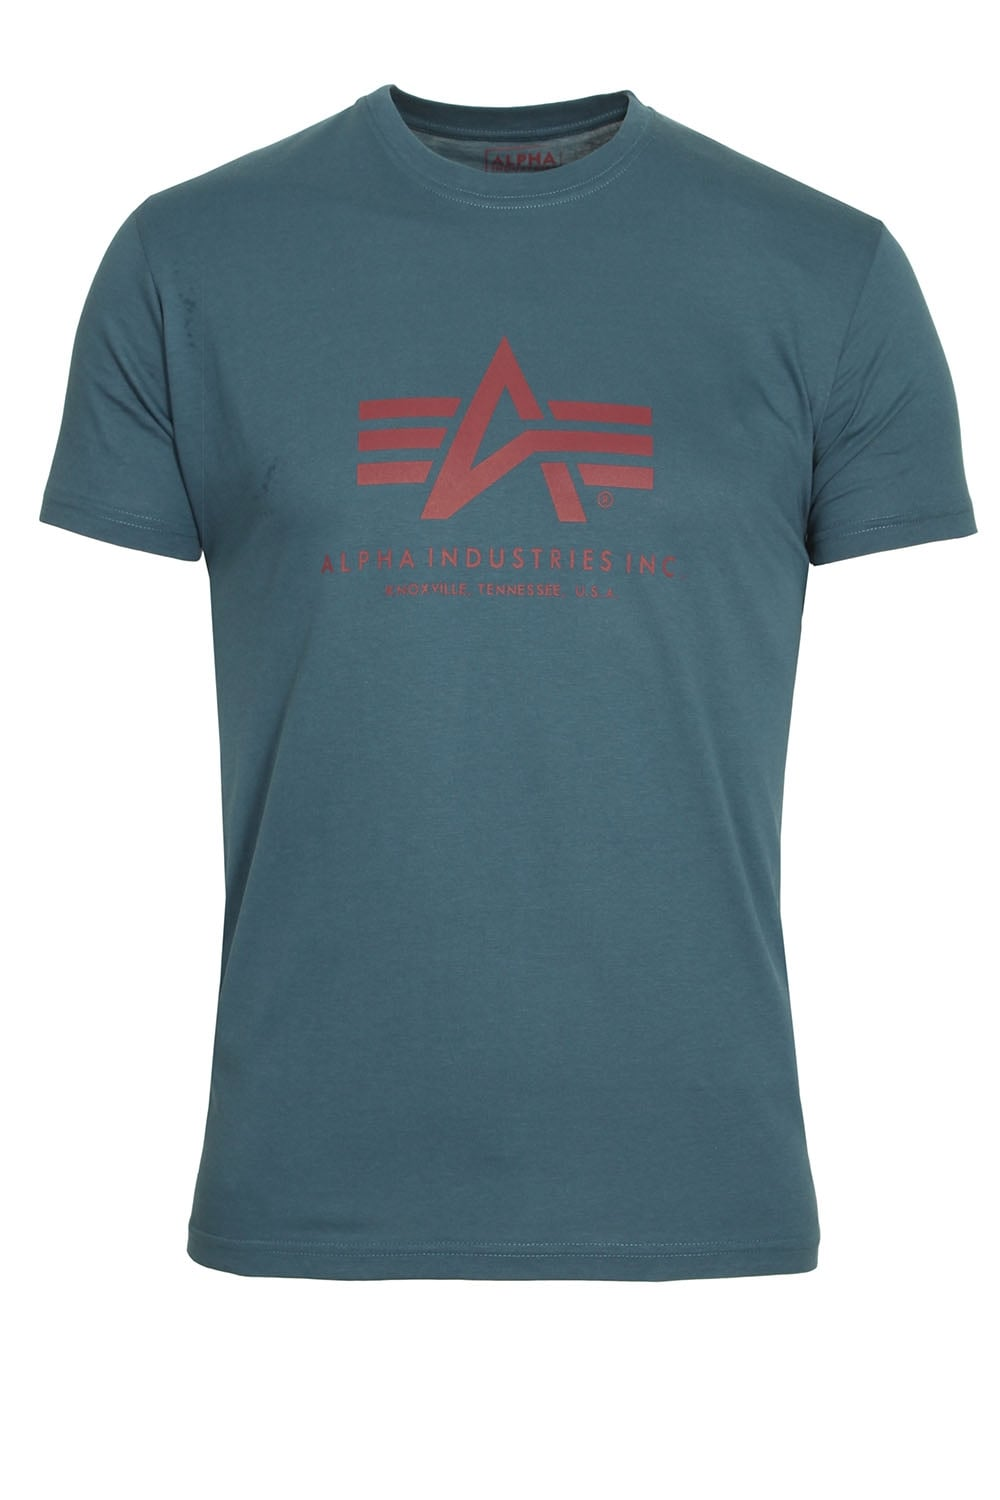 cf5d2b5ee5ba8 Alpha Industries Basic Petrol Blue Logo T-Shirt